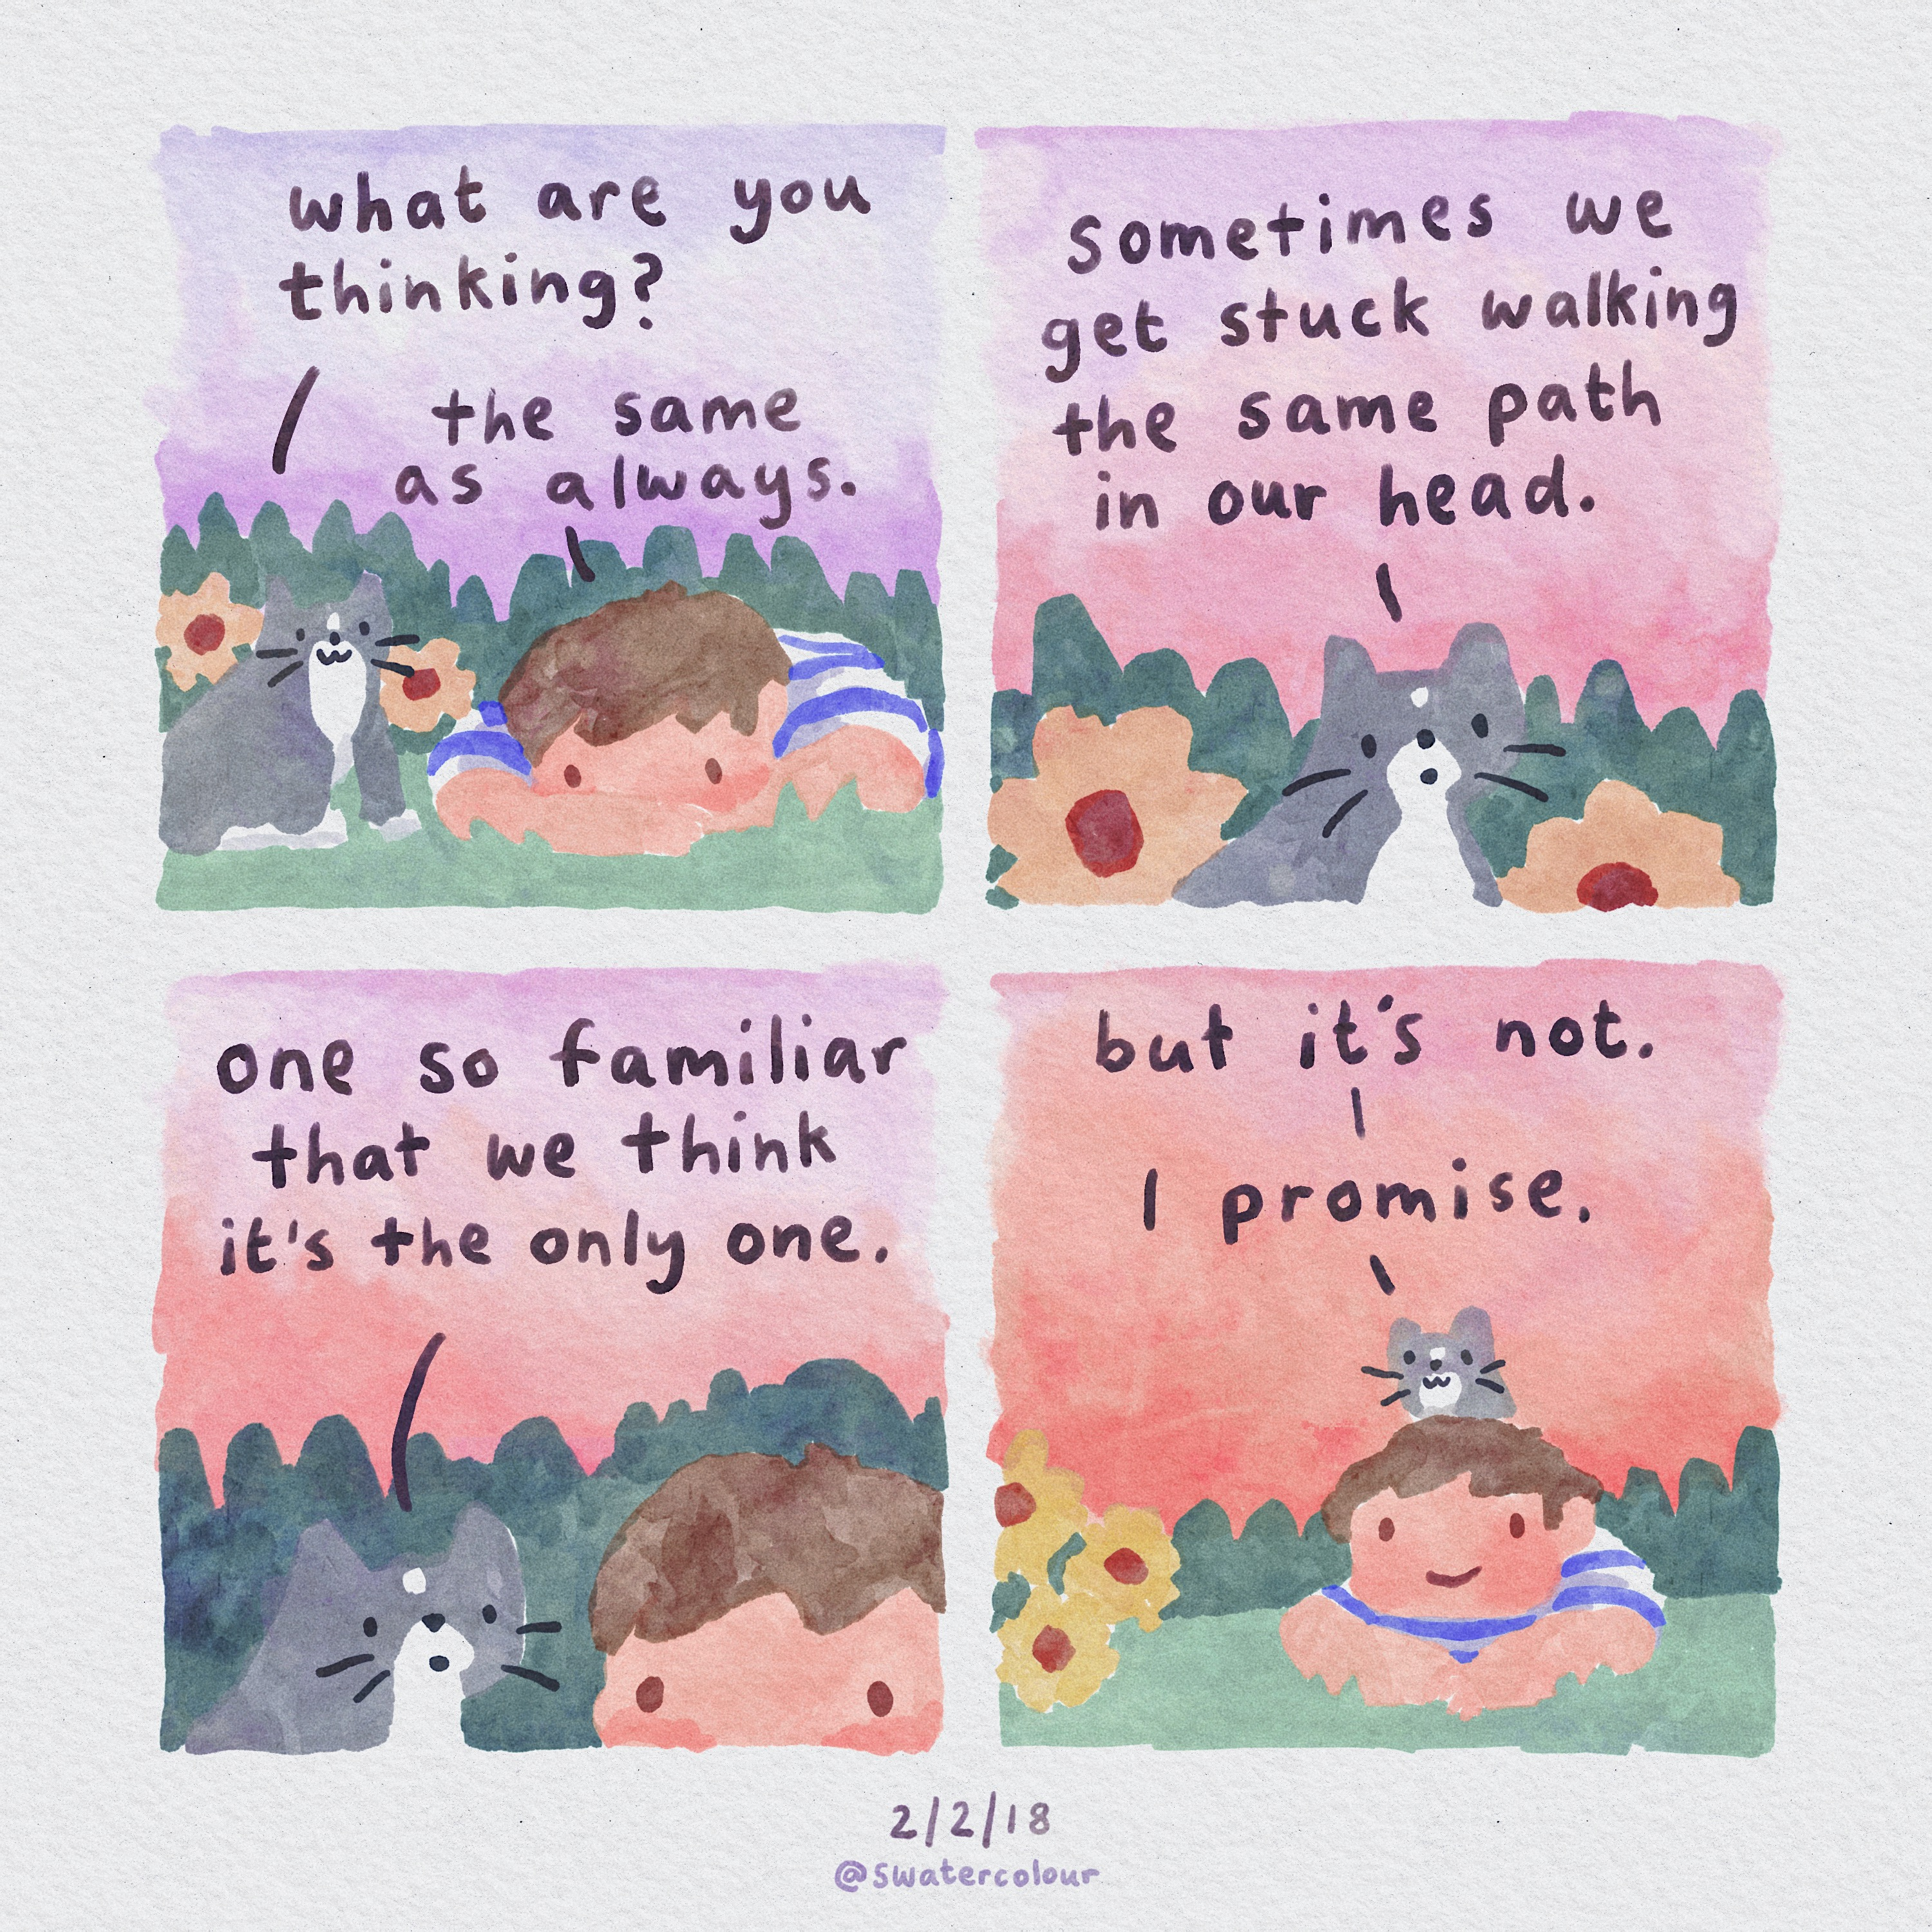 1. 'What are you thinking?' / 'The same as always.' 2. 'Sometimes we get stuck walking the same path in our head.' 3. 'One so familiar that we think it's the only one' 4. 'But it's not. I promise.'